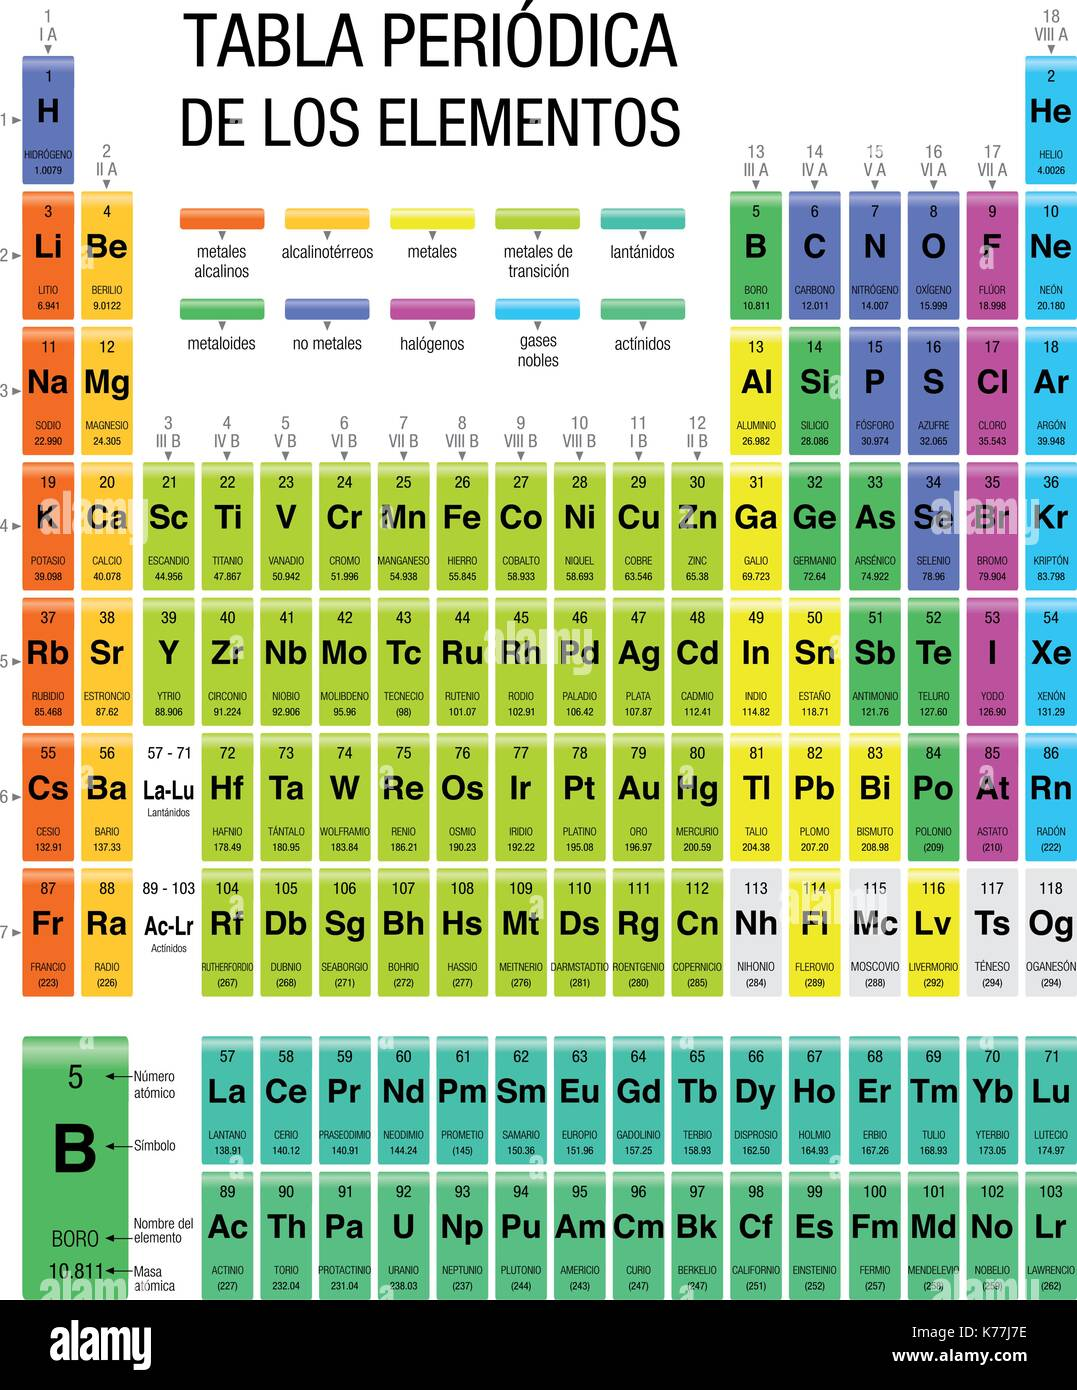 Tabla periodica de los elementos periodic table of elements in tabla periodica de los elementos periodic table of elements in spanish language size 216 x 28 cm vector image urtaz Gallery